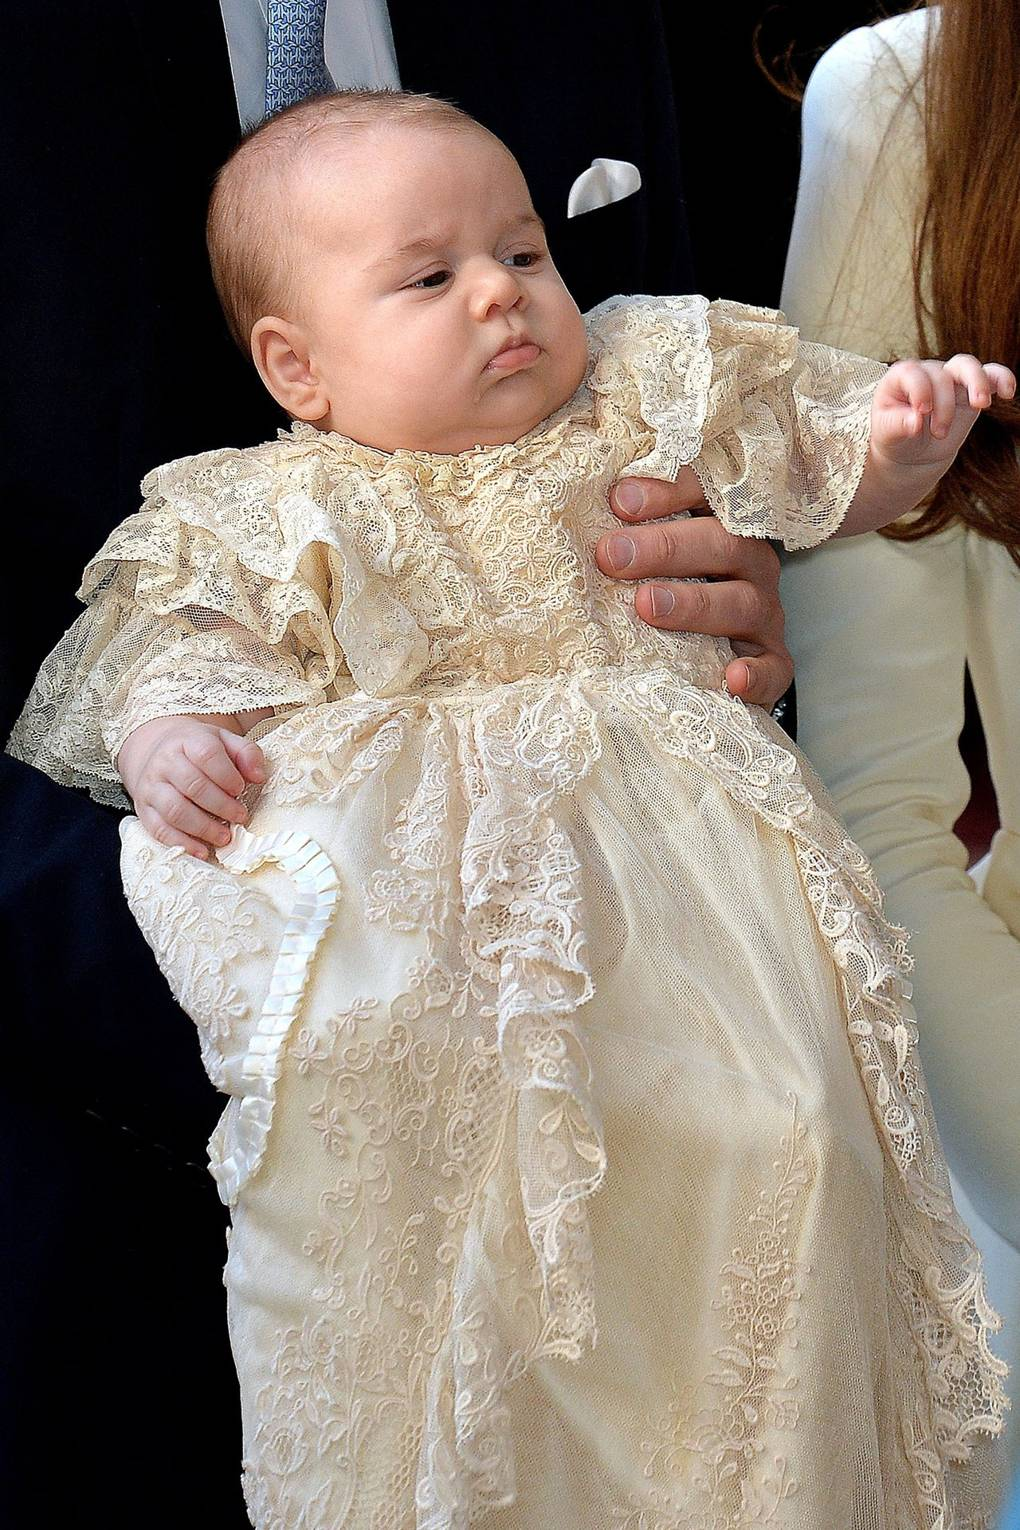 The Royal Christening Gown was dyed with Yorkshire Tea to make it the perfect shade